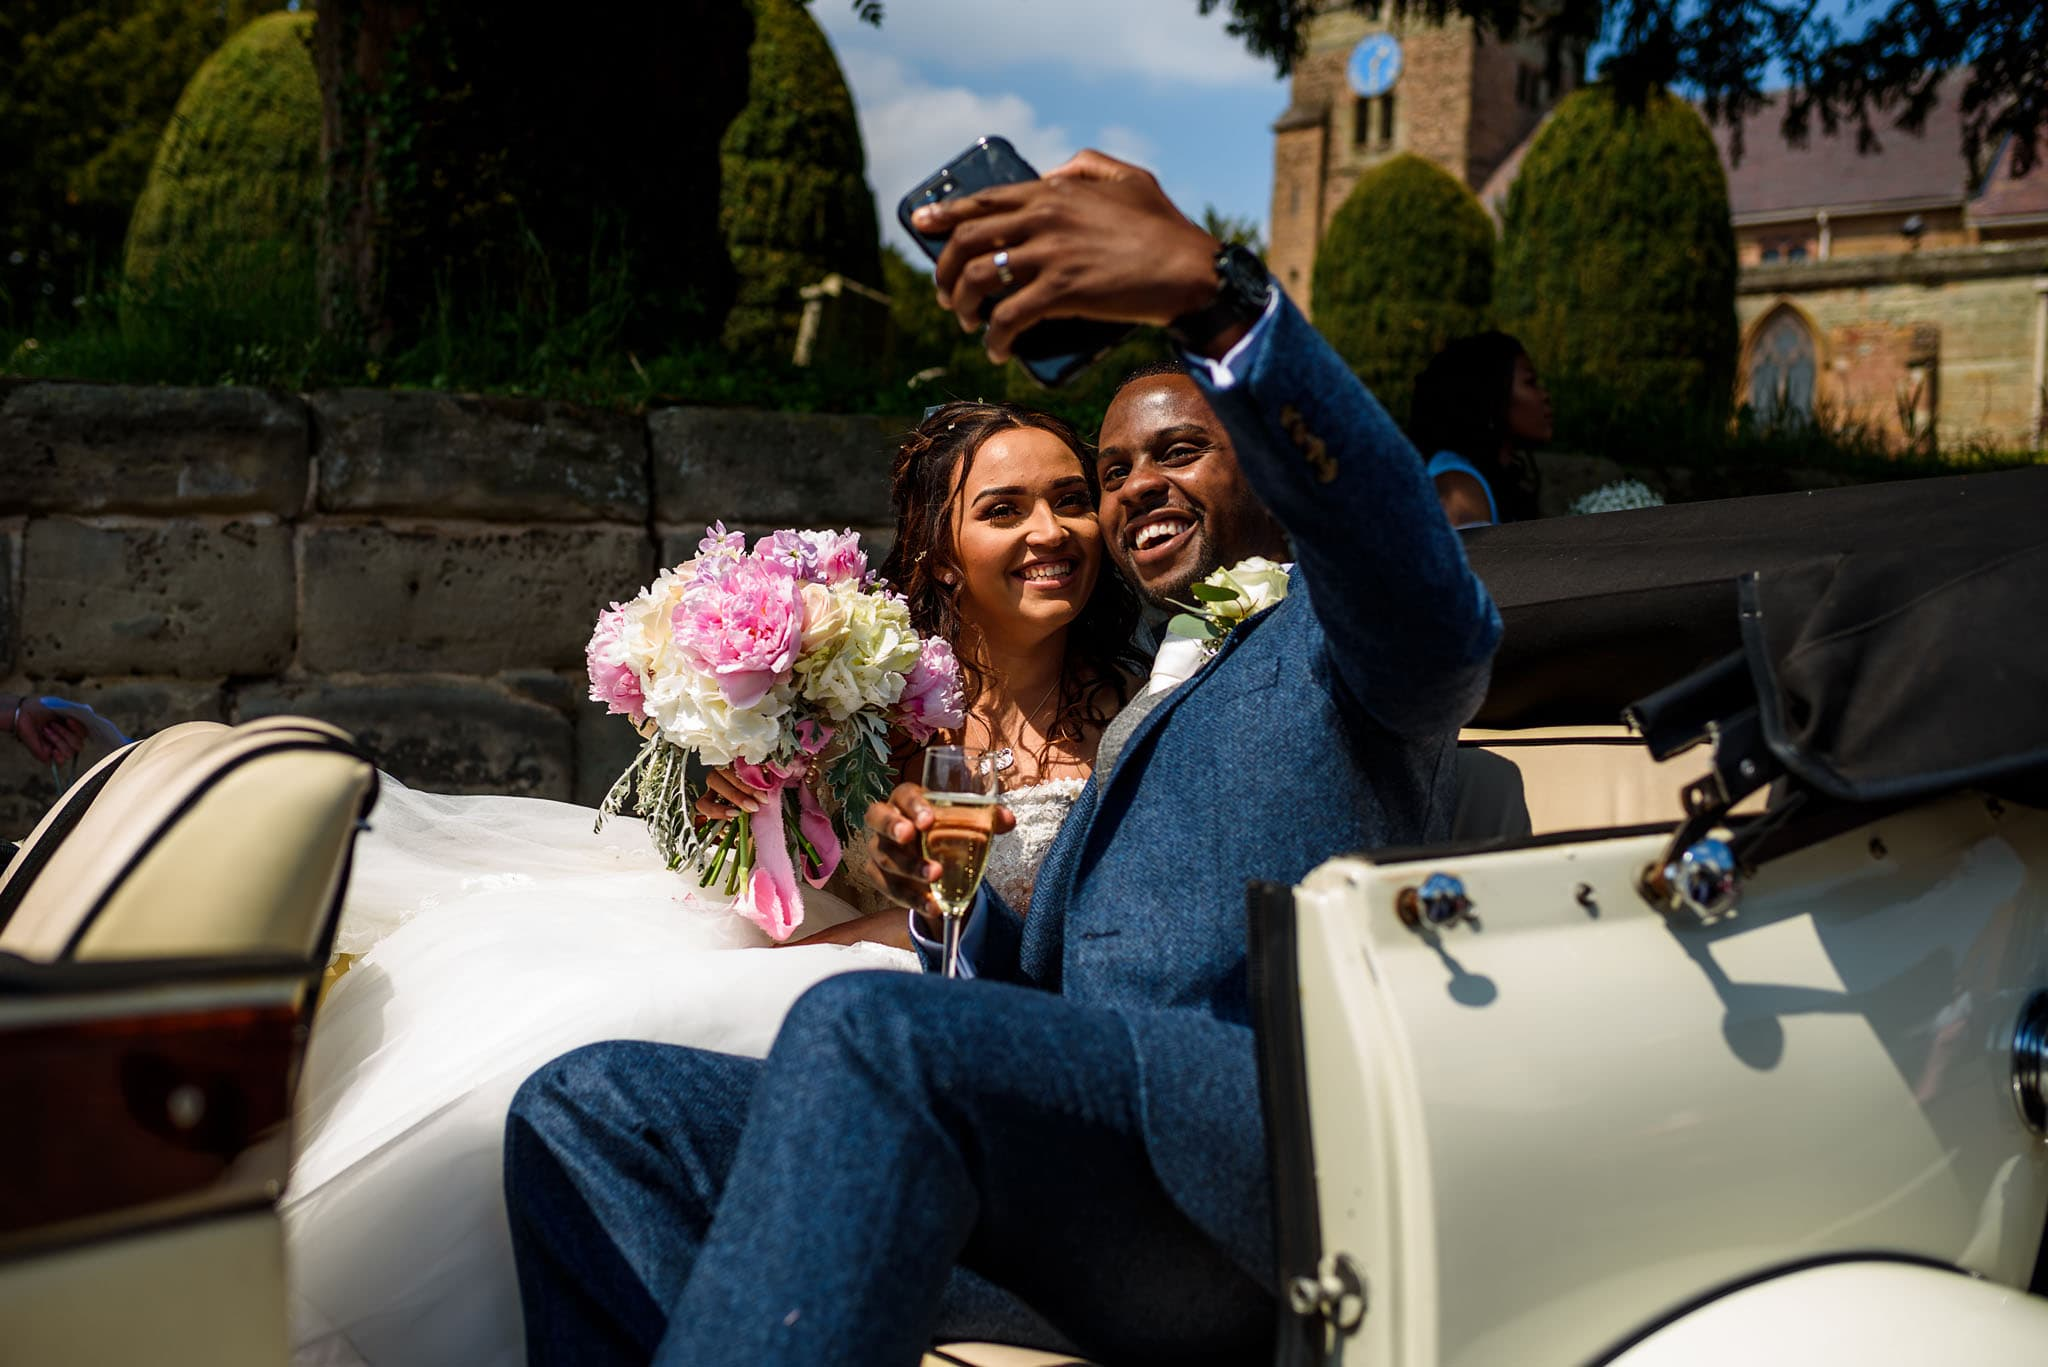 bride and groom selfie in their vintage wedding car